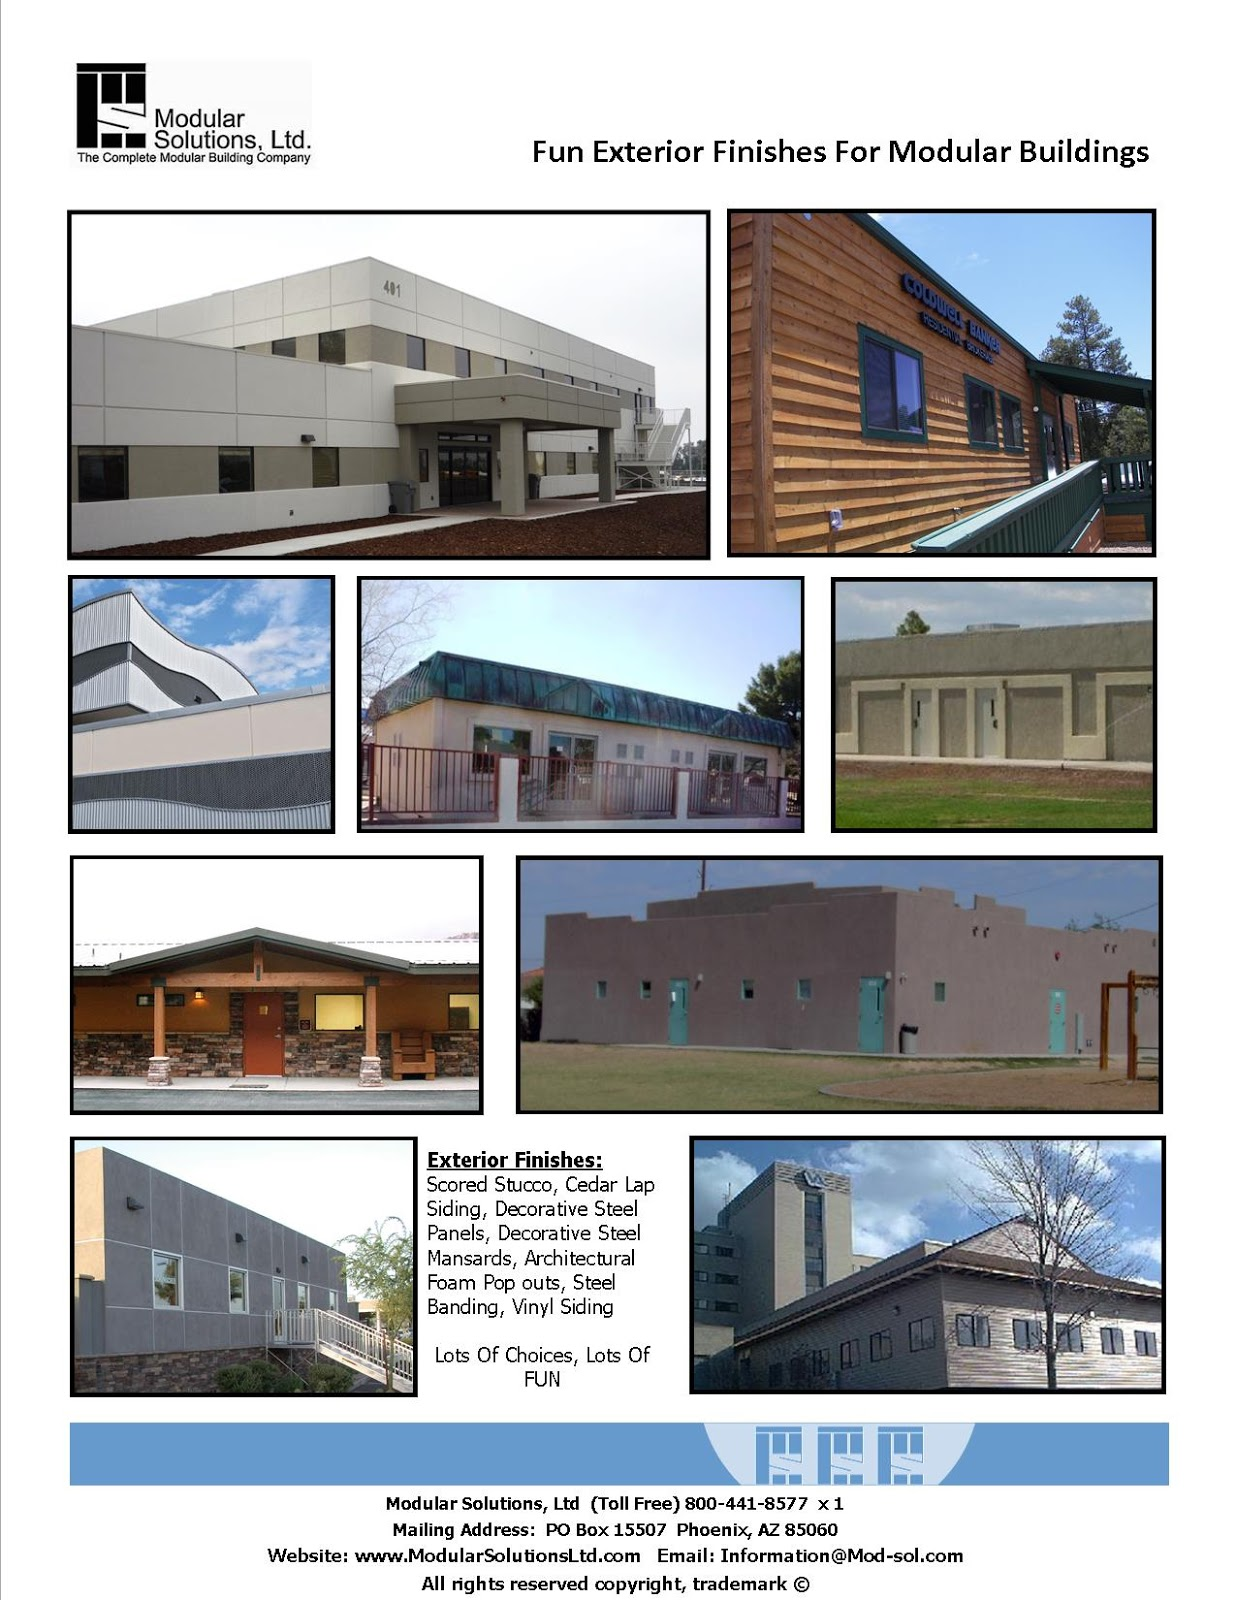 Modular Solutions Ltd The Experts On Prefabricated Buildings Fun Exterior Finishes For